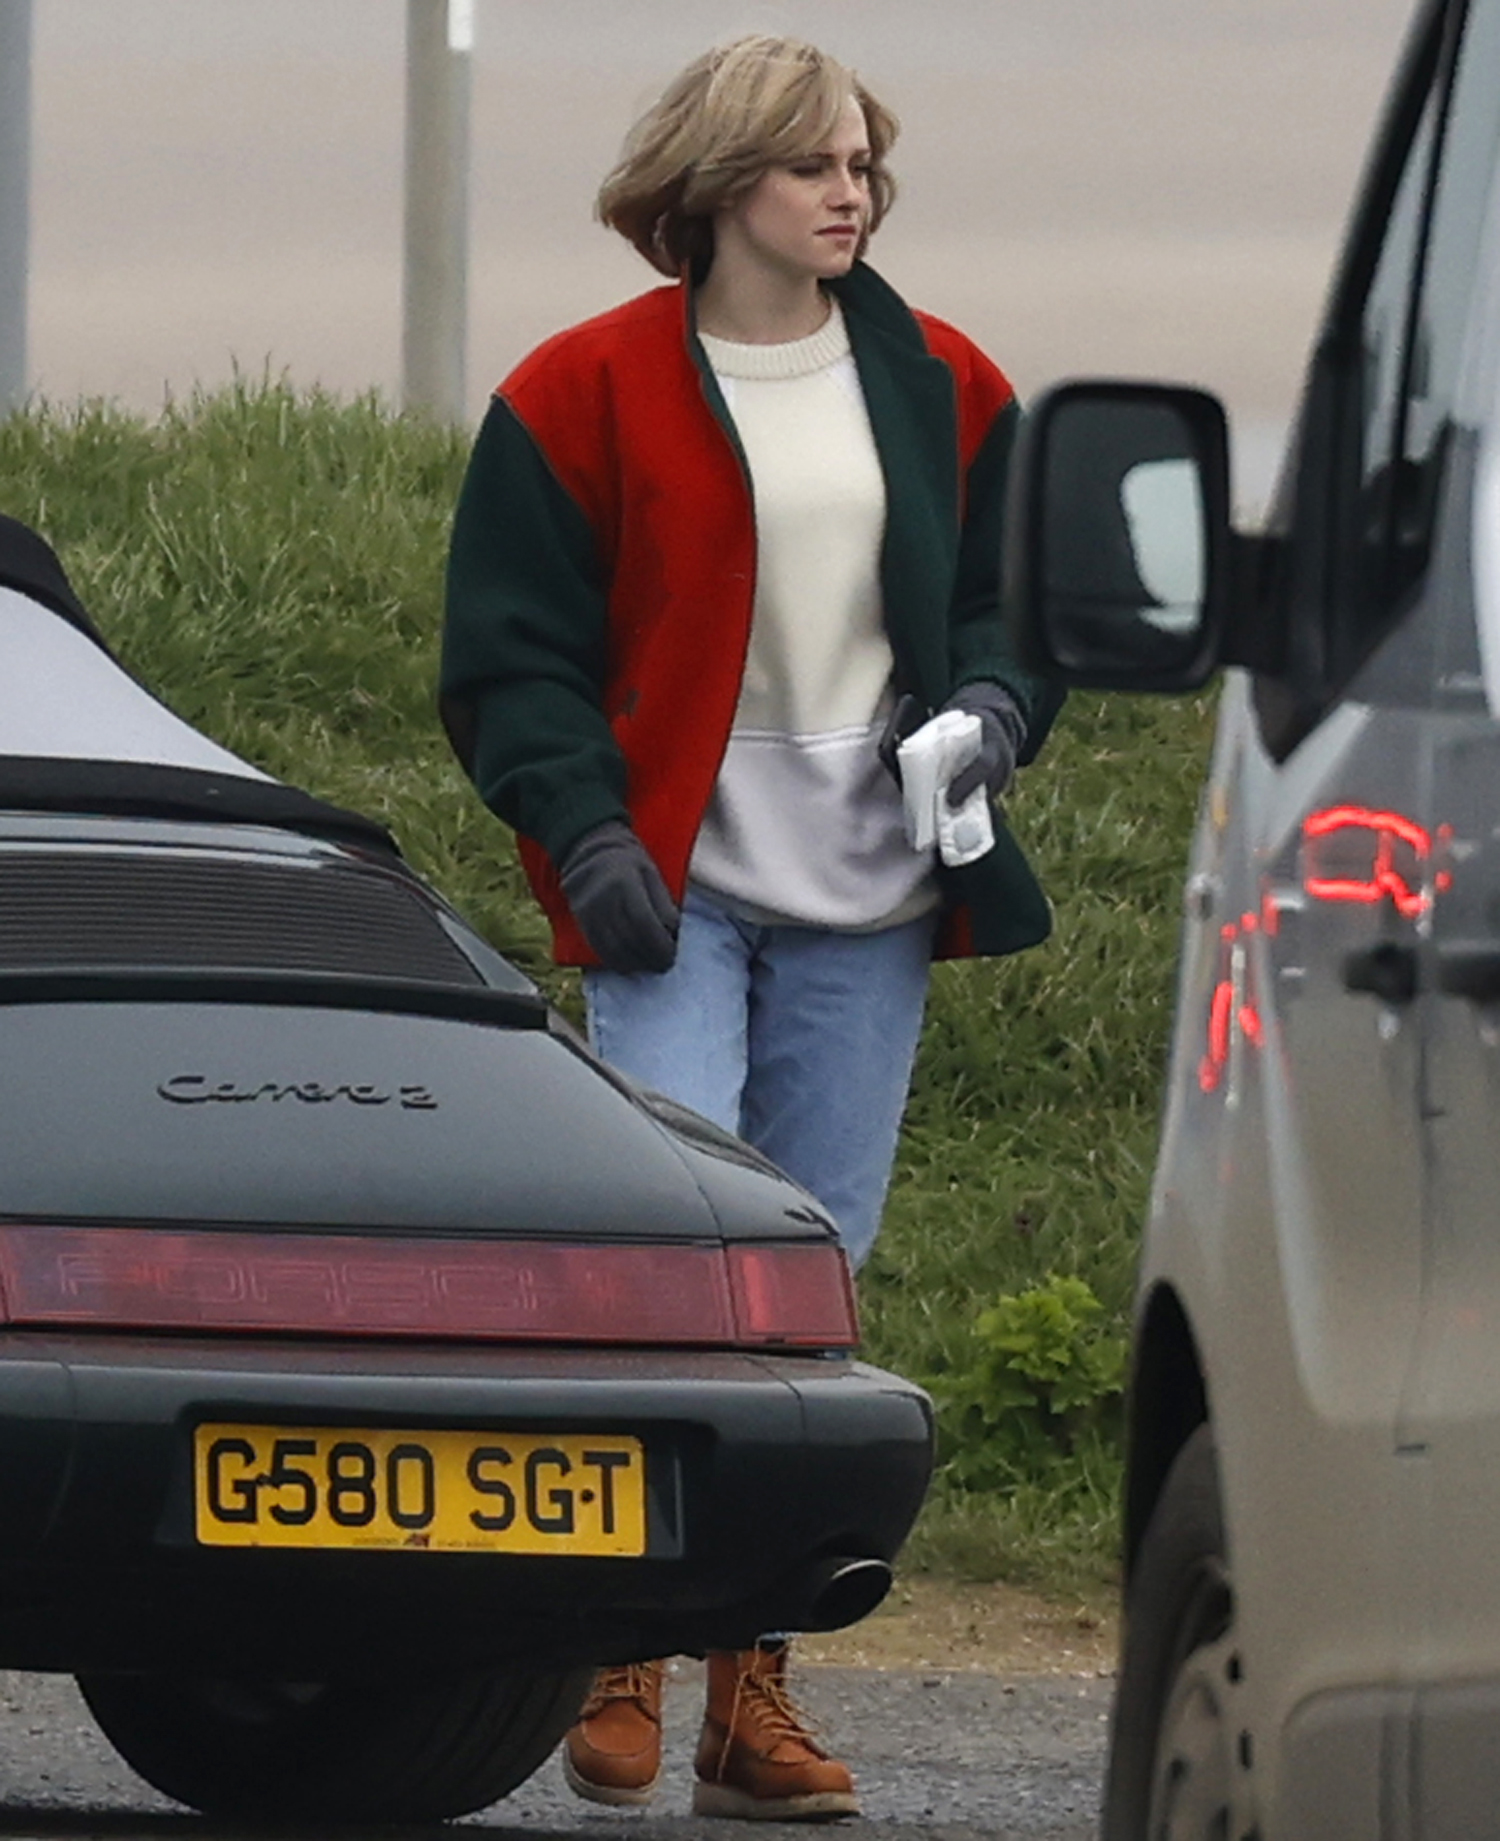 Kristen Stewart is seen in character as Princess Diana